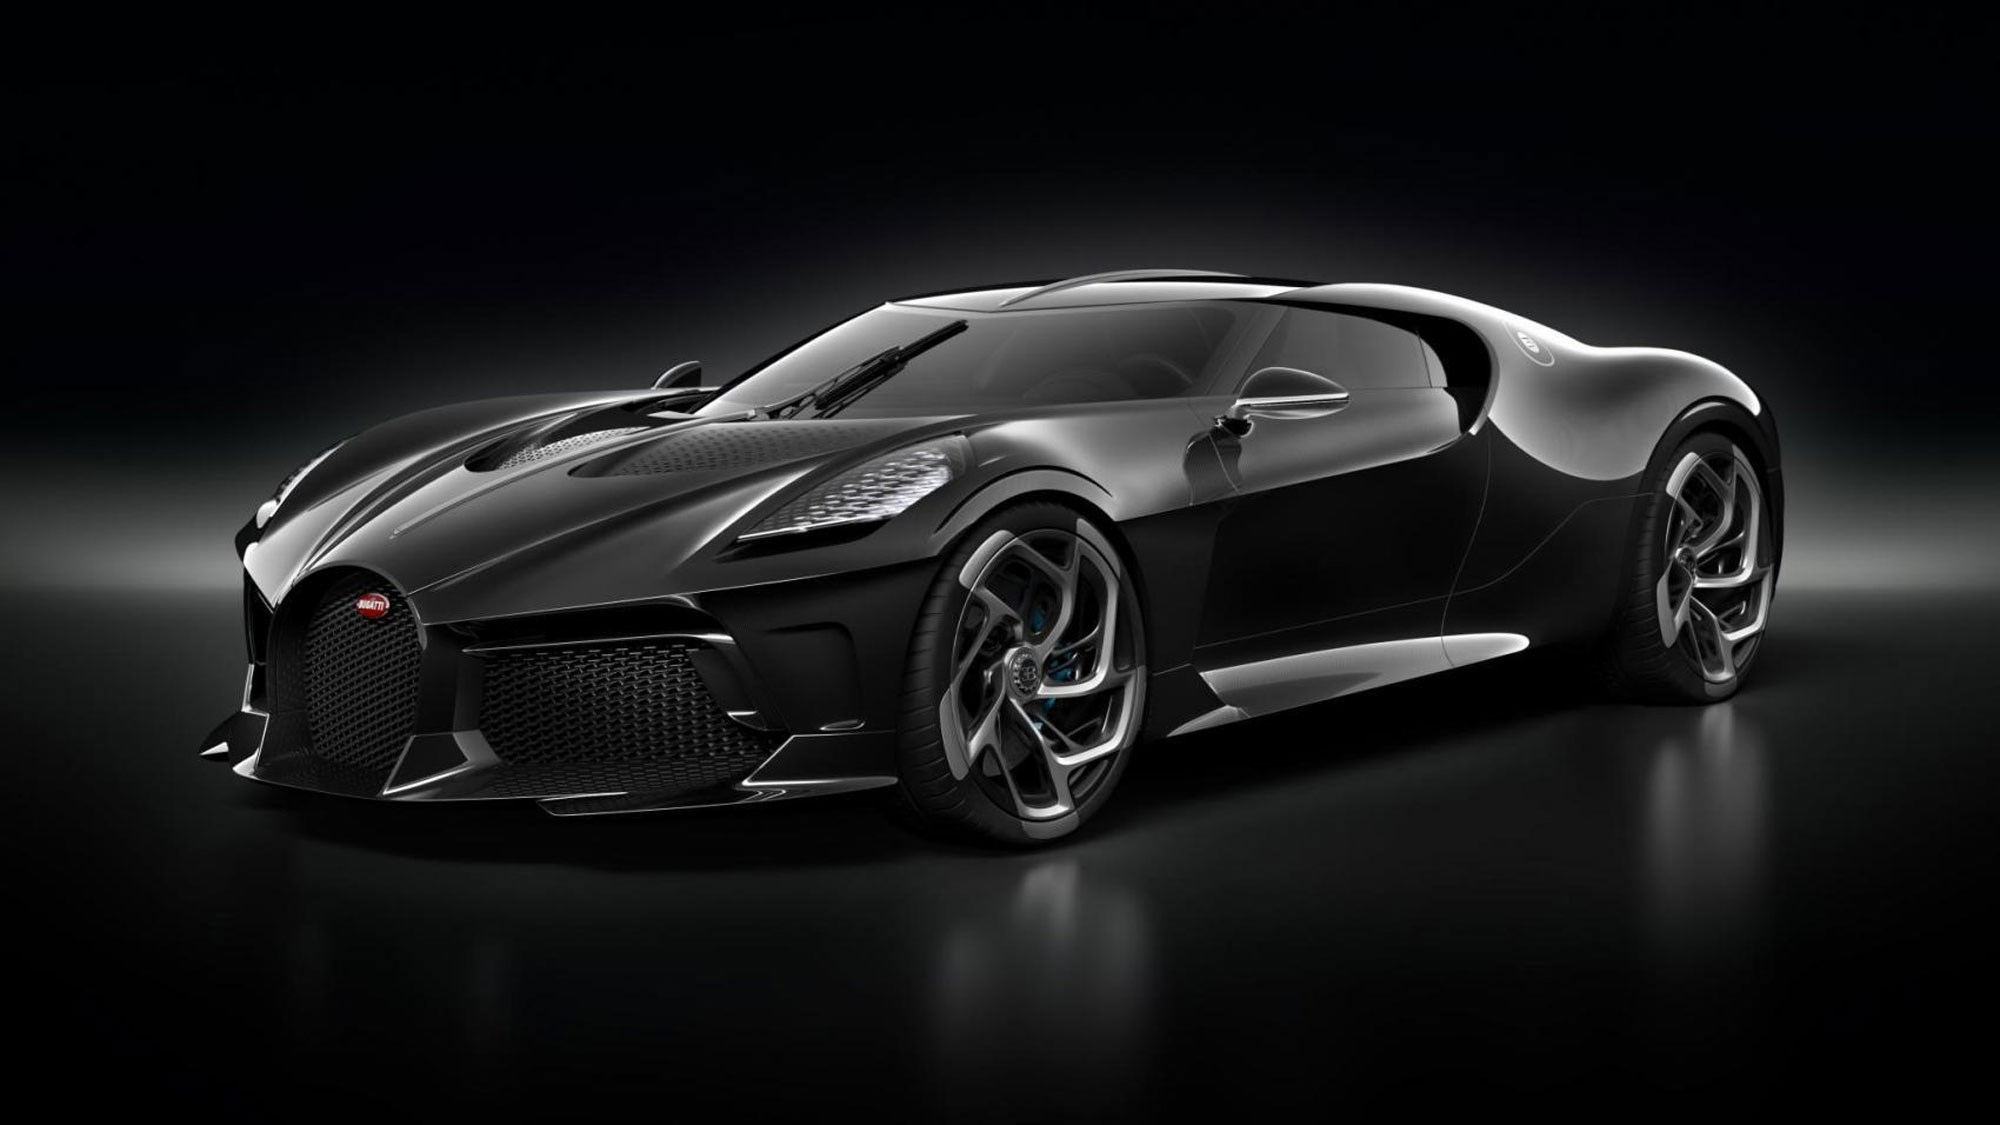 Bugatti 'La Voiture Noire' is the most expensive new vehicle  ever